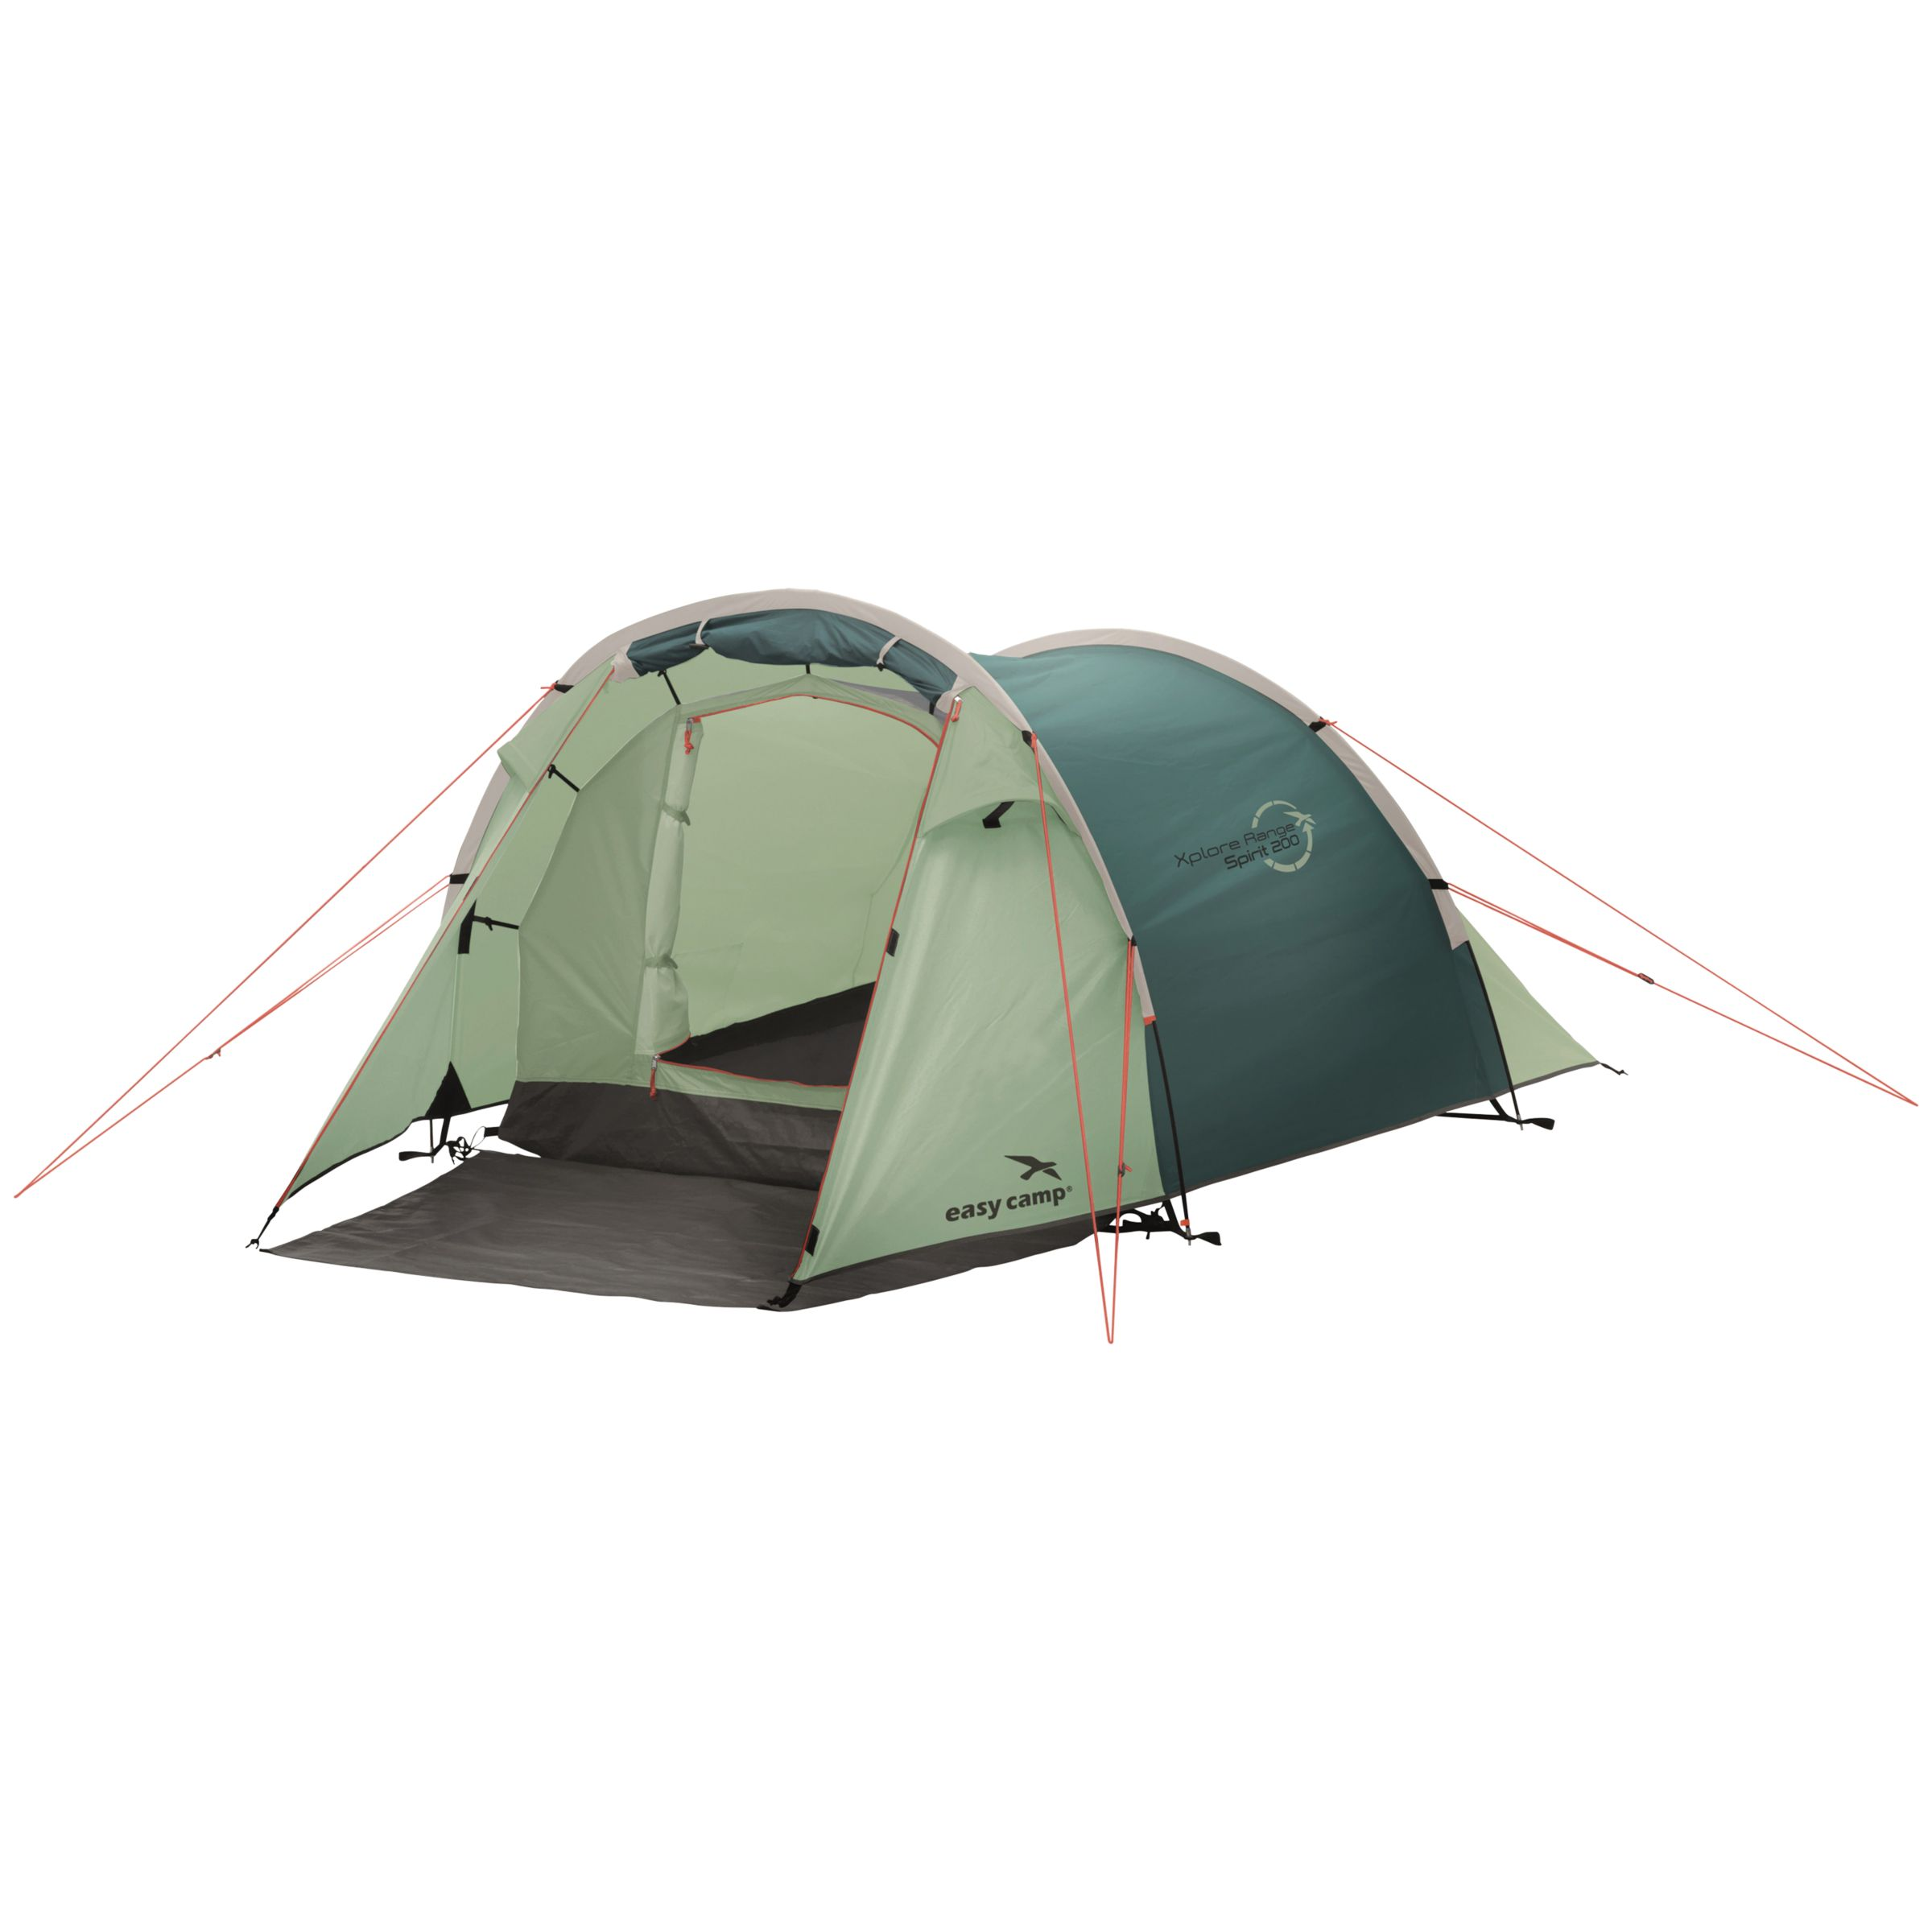 Easy Camp Easy Camp Spirit 200 Camping Tent, Blue